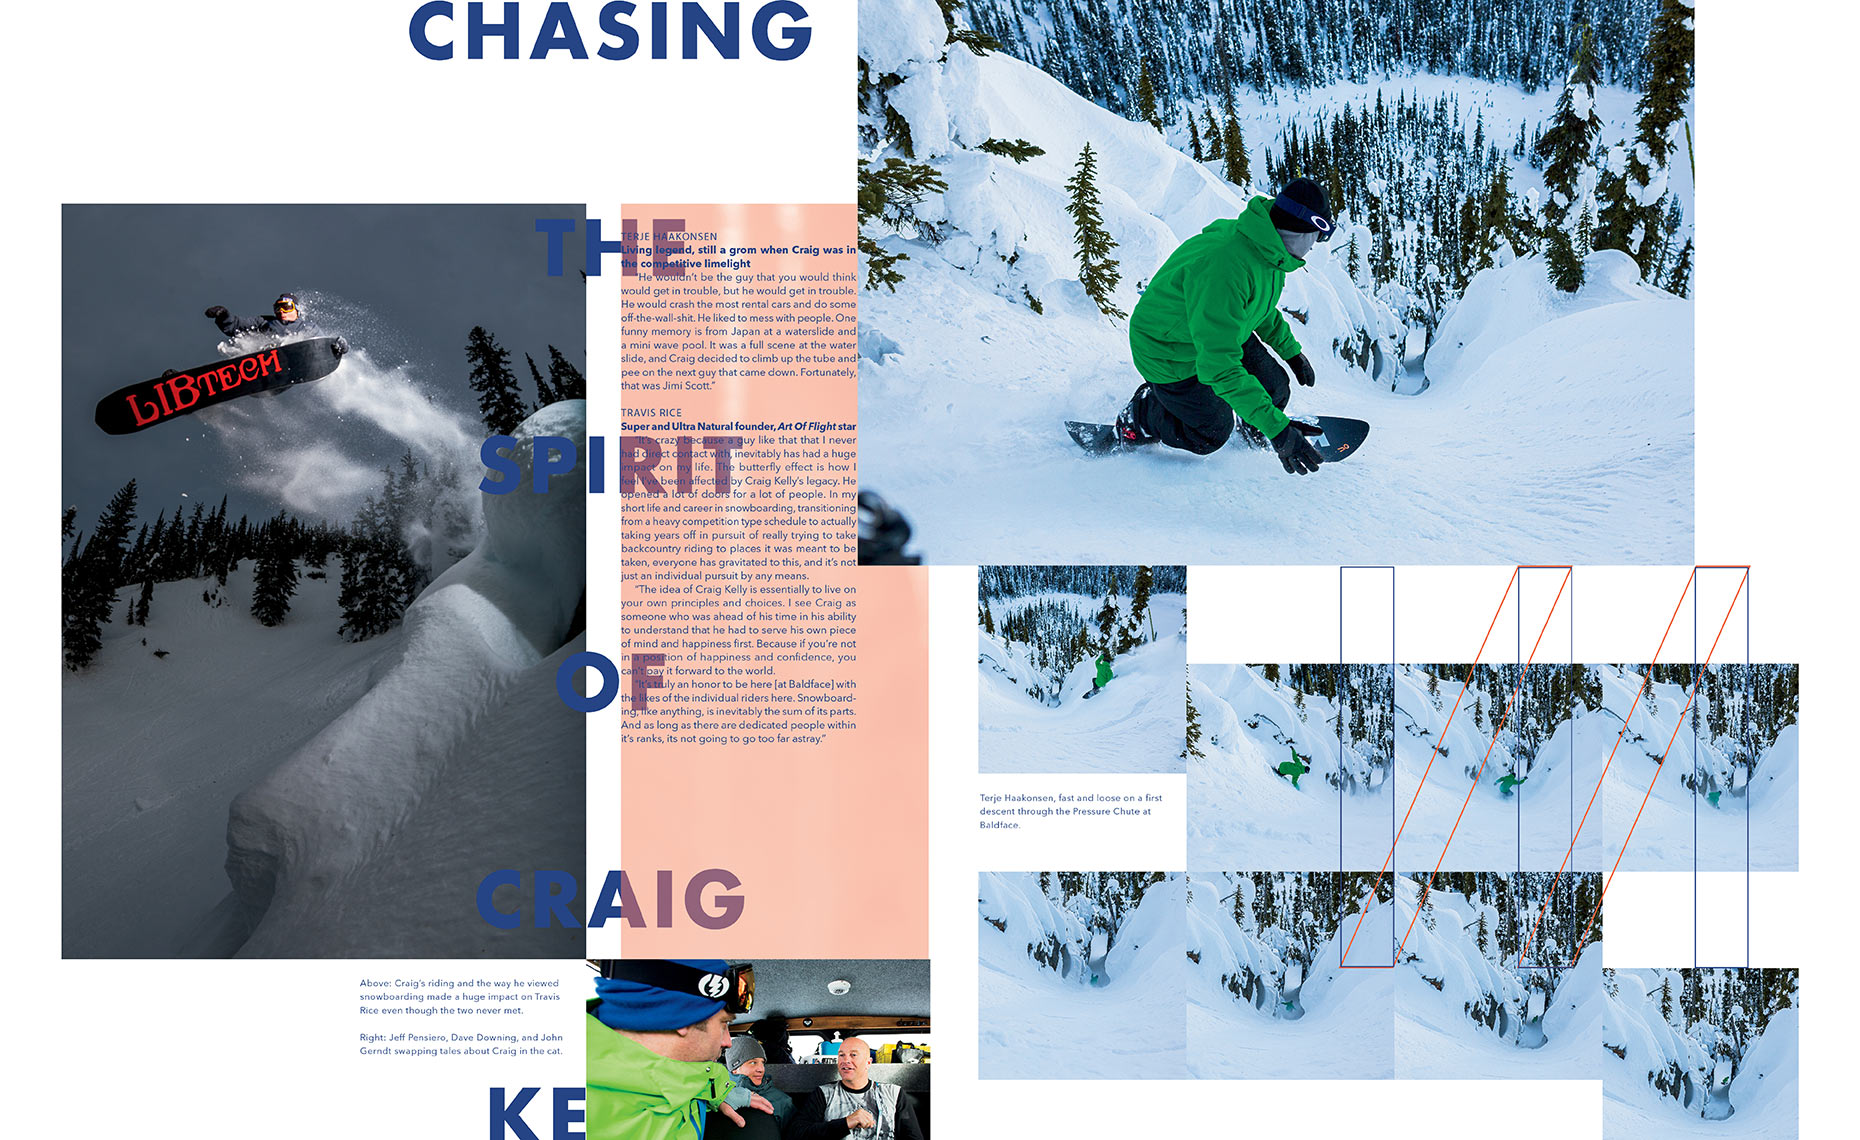 Chasing-The-Spirit-Of-Craig-Kelly-Chris-Wellhausen-03